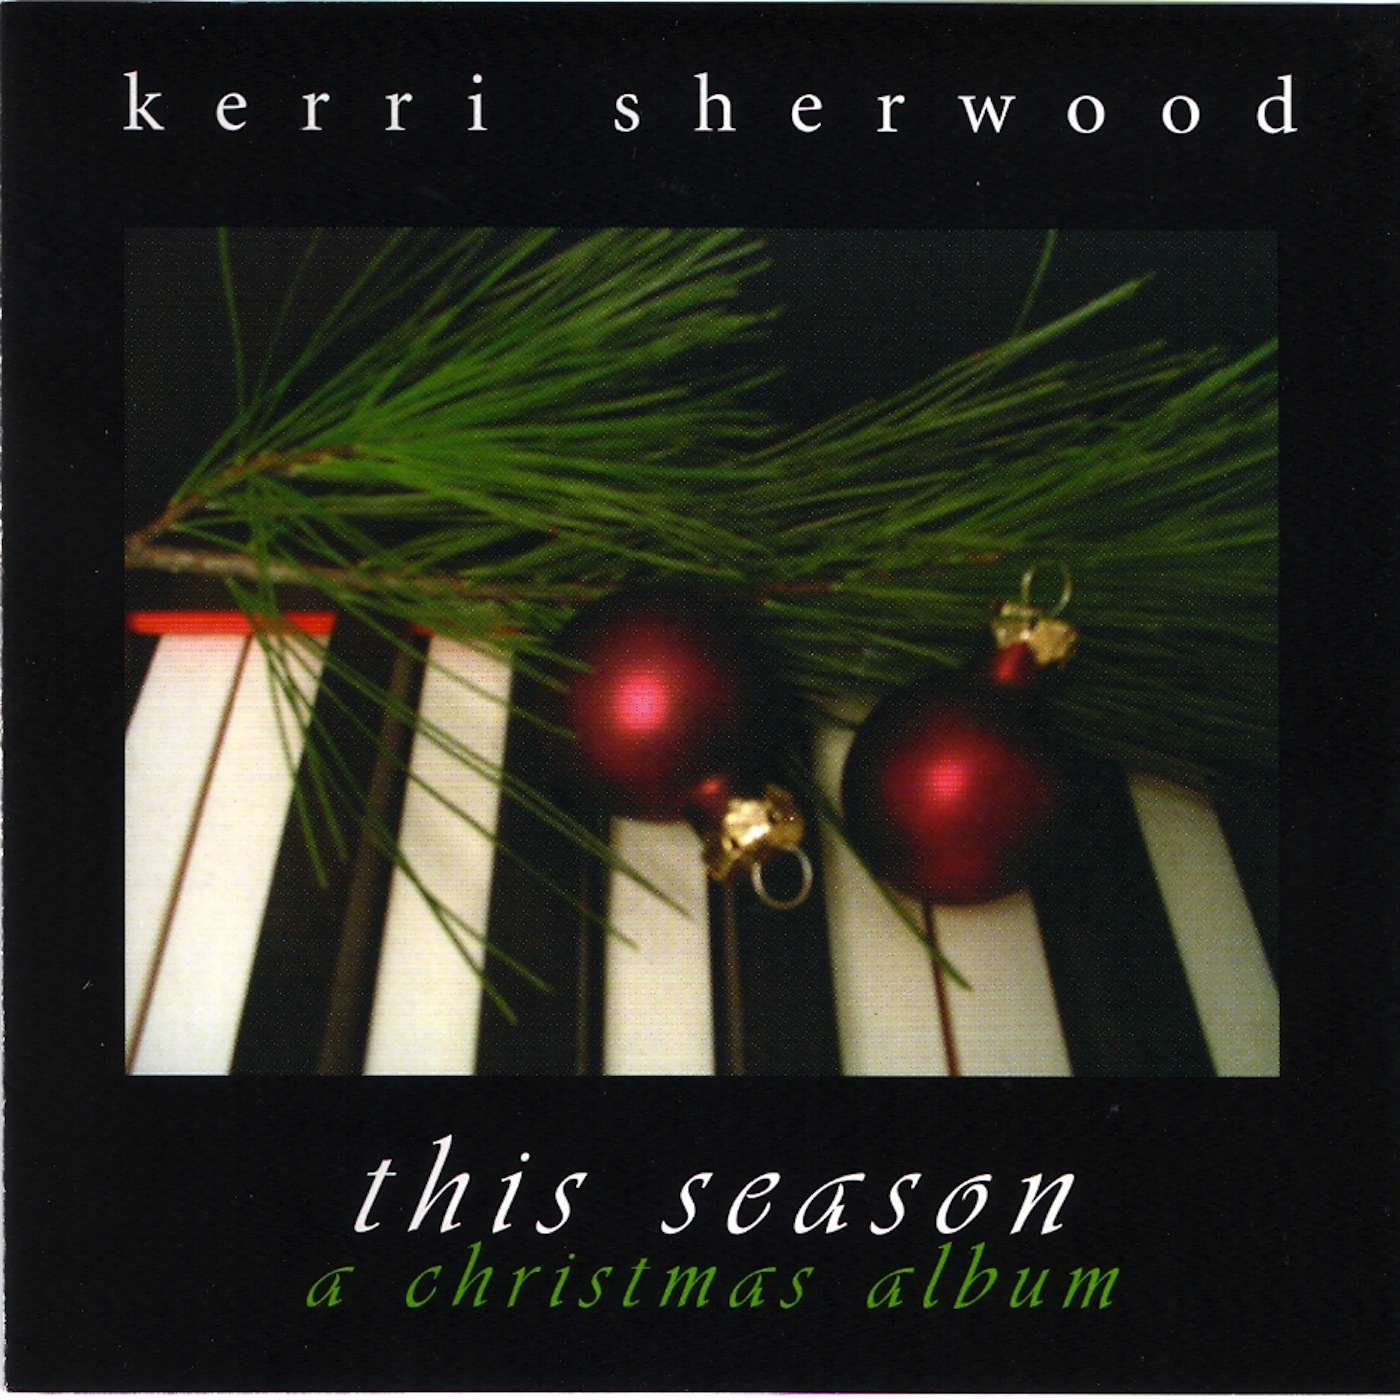 this season - a christmas album